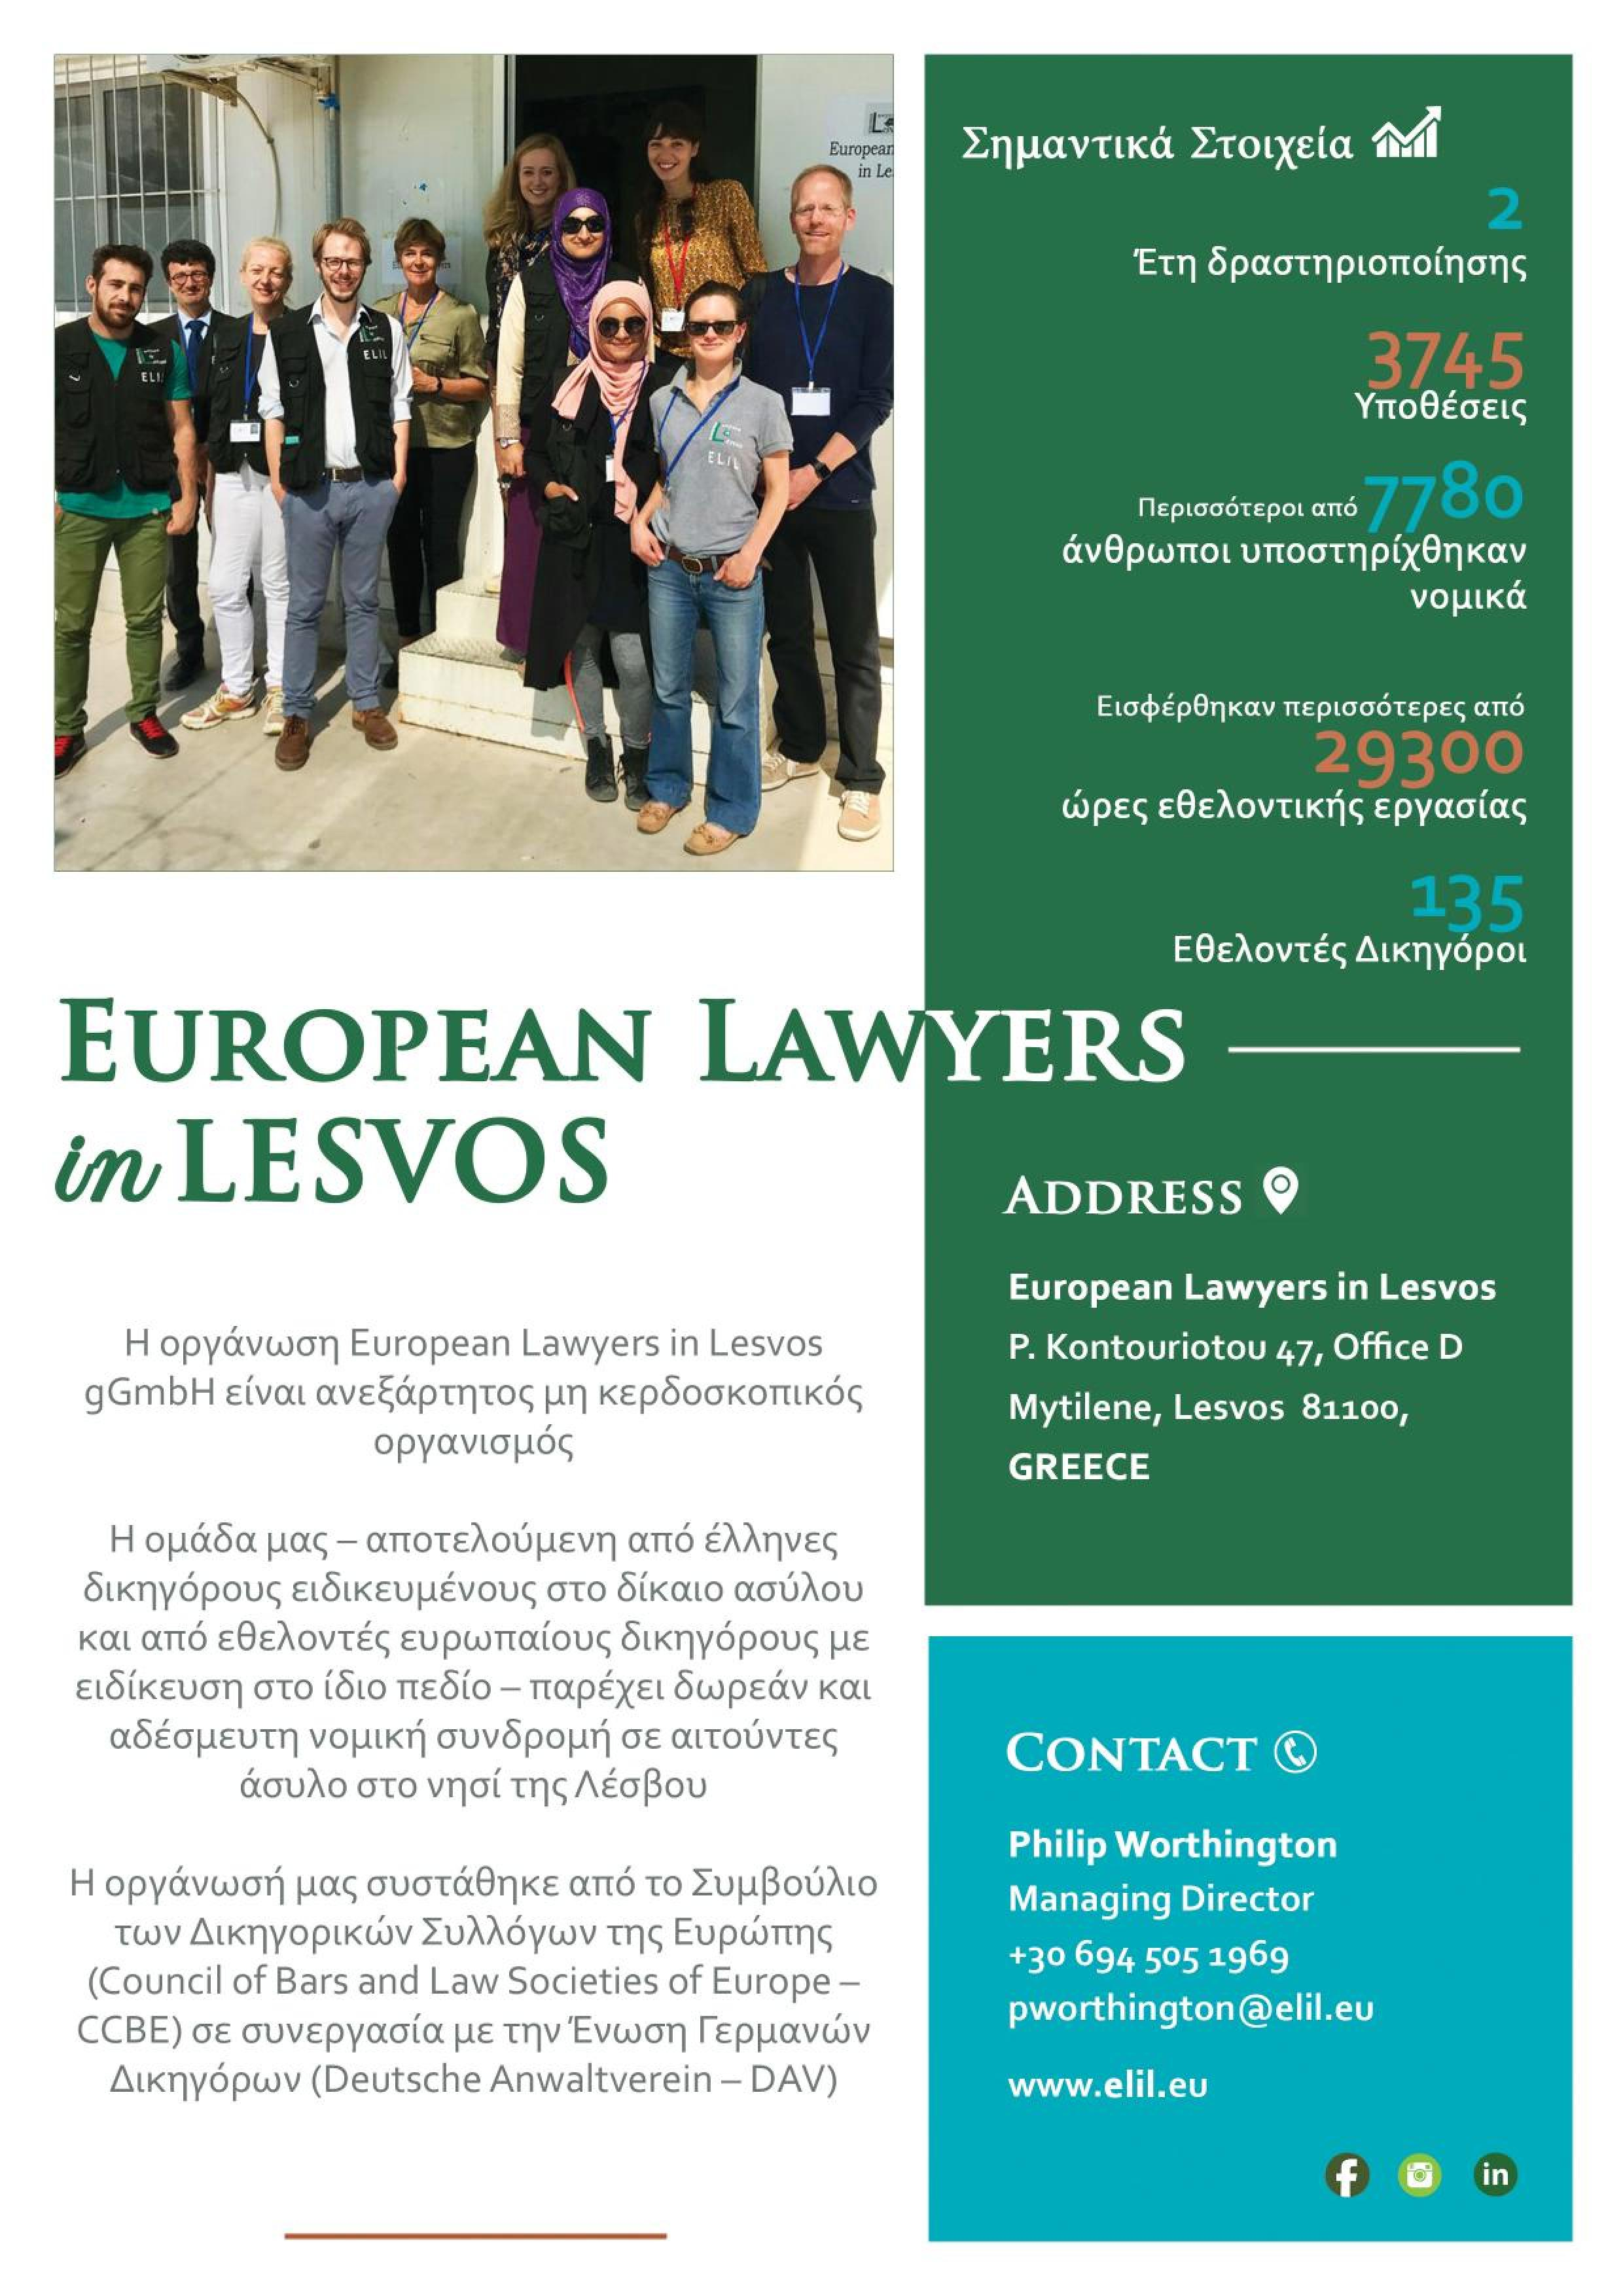 European Lawyers in Lesvos - Infographic_GR-page-001.jpg